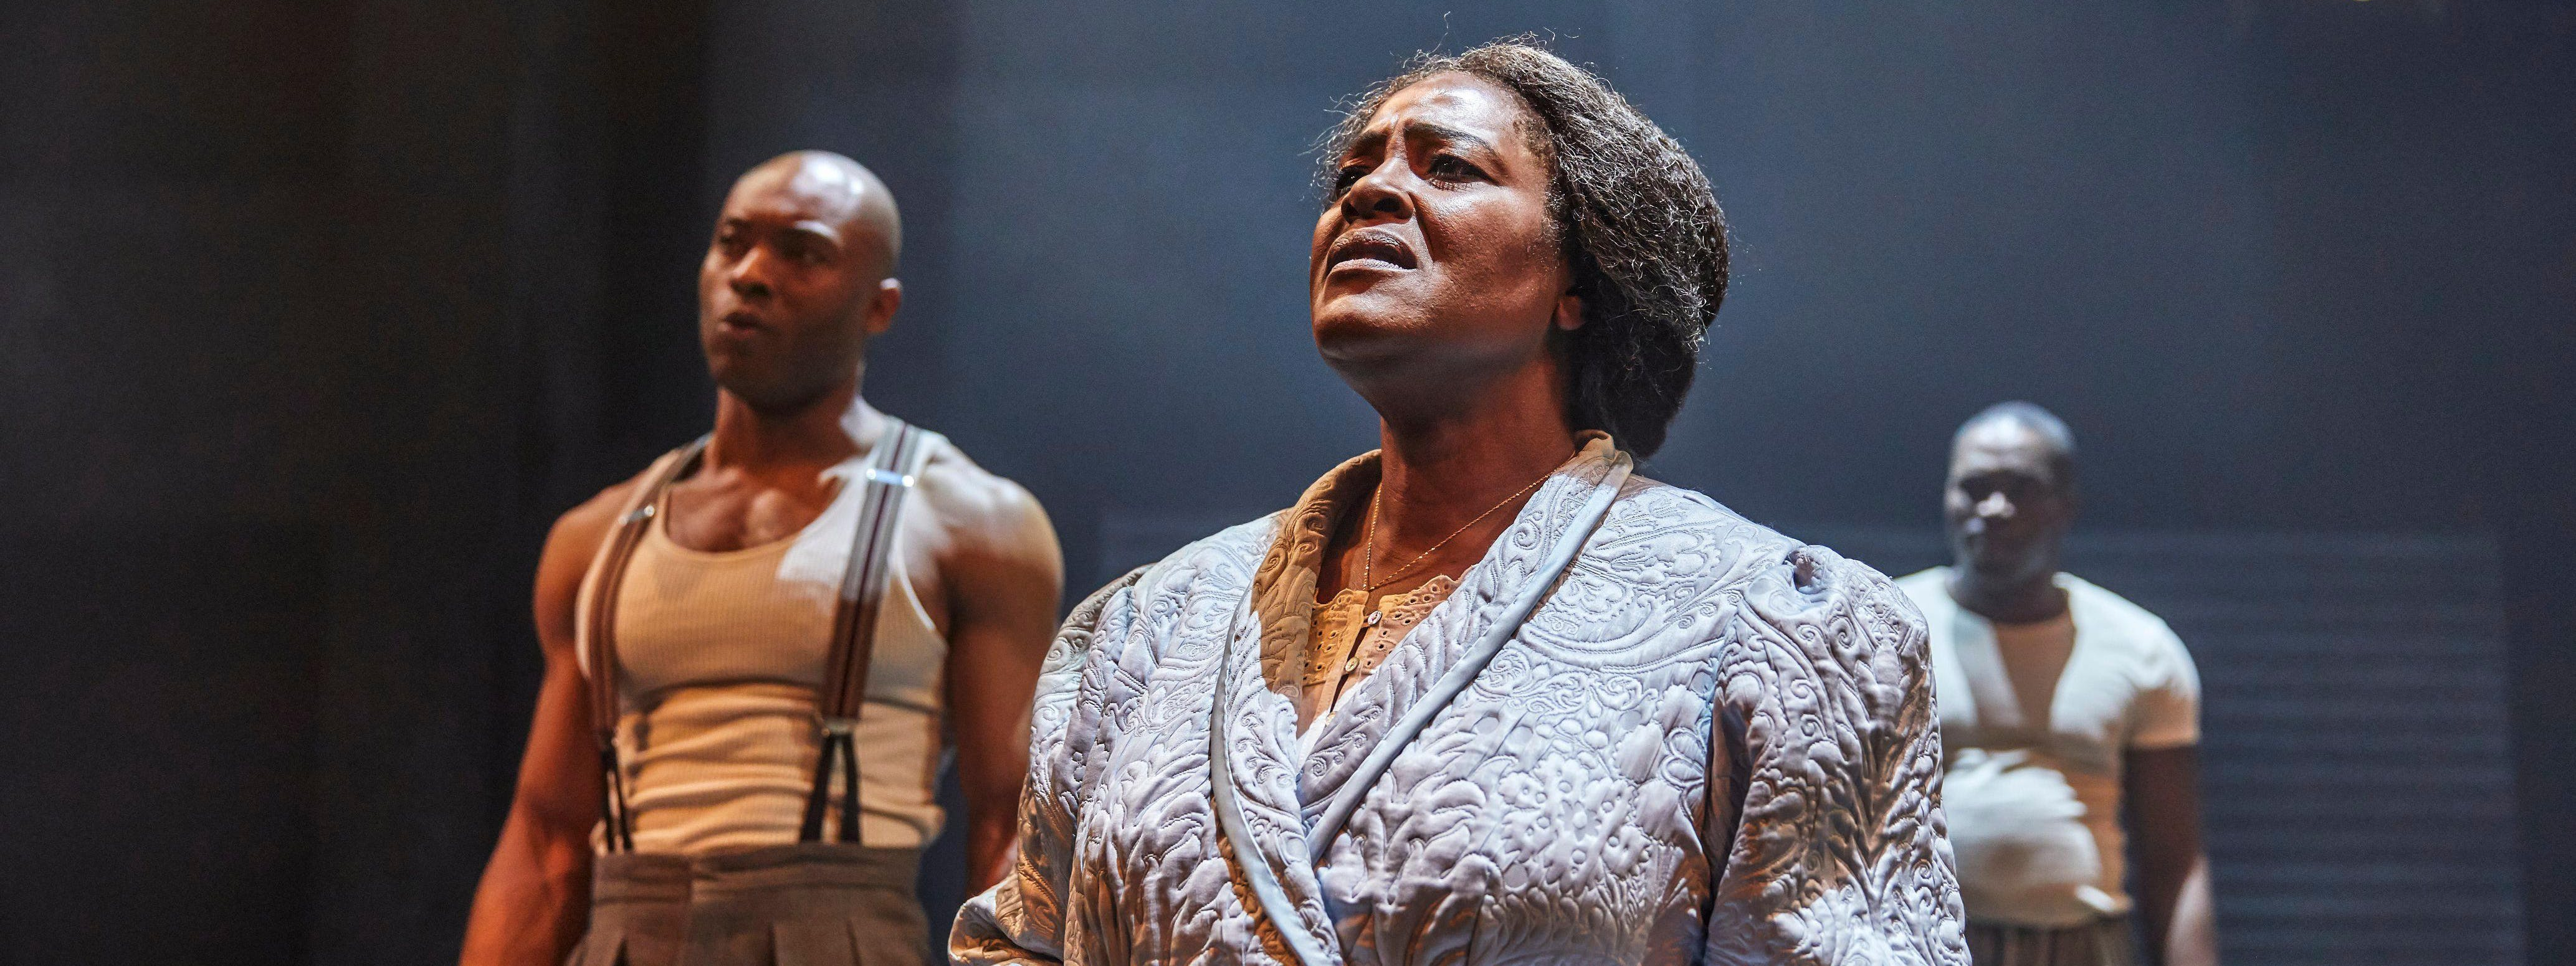 Sharon D Clarke in Death of a Salesman - on stage with co-stars